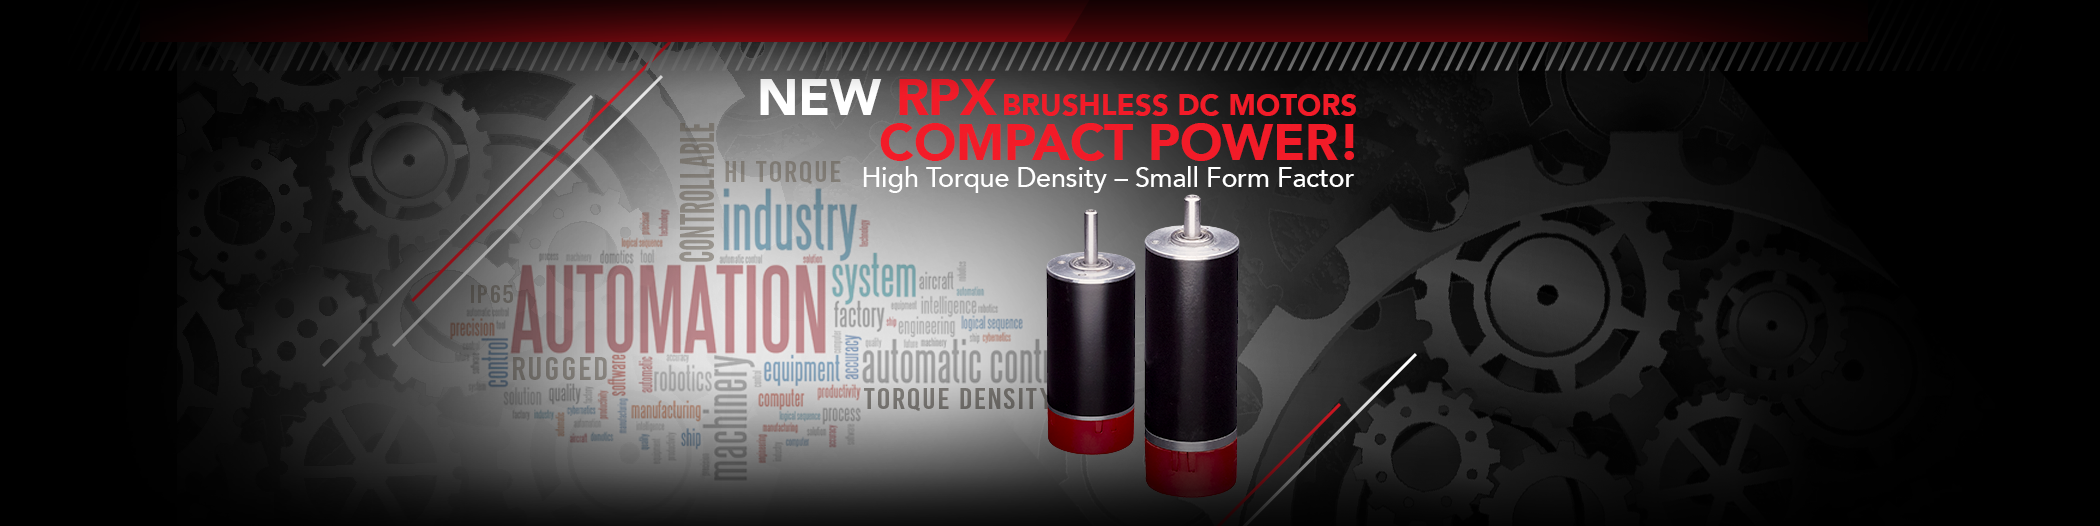 New RPX Brushless DC Motors; Compact Power! High Torque Density - Small Form Factor